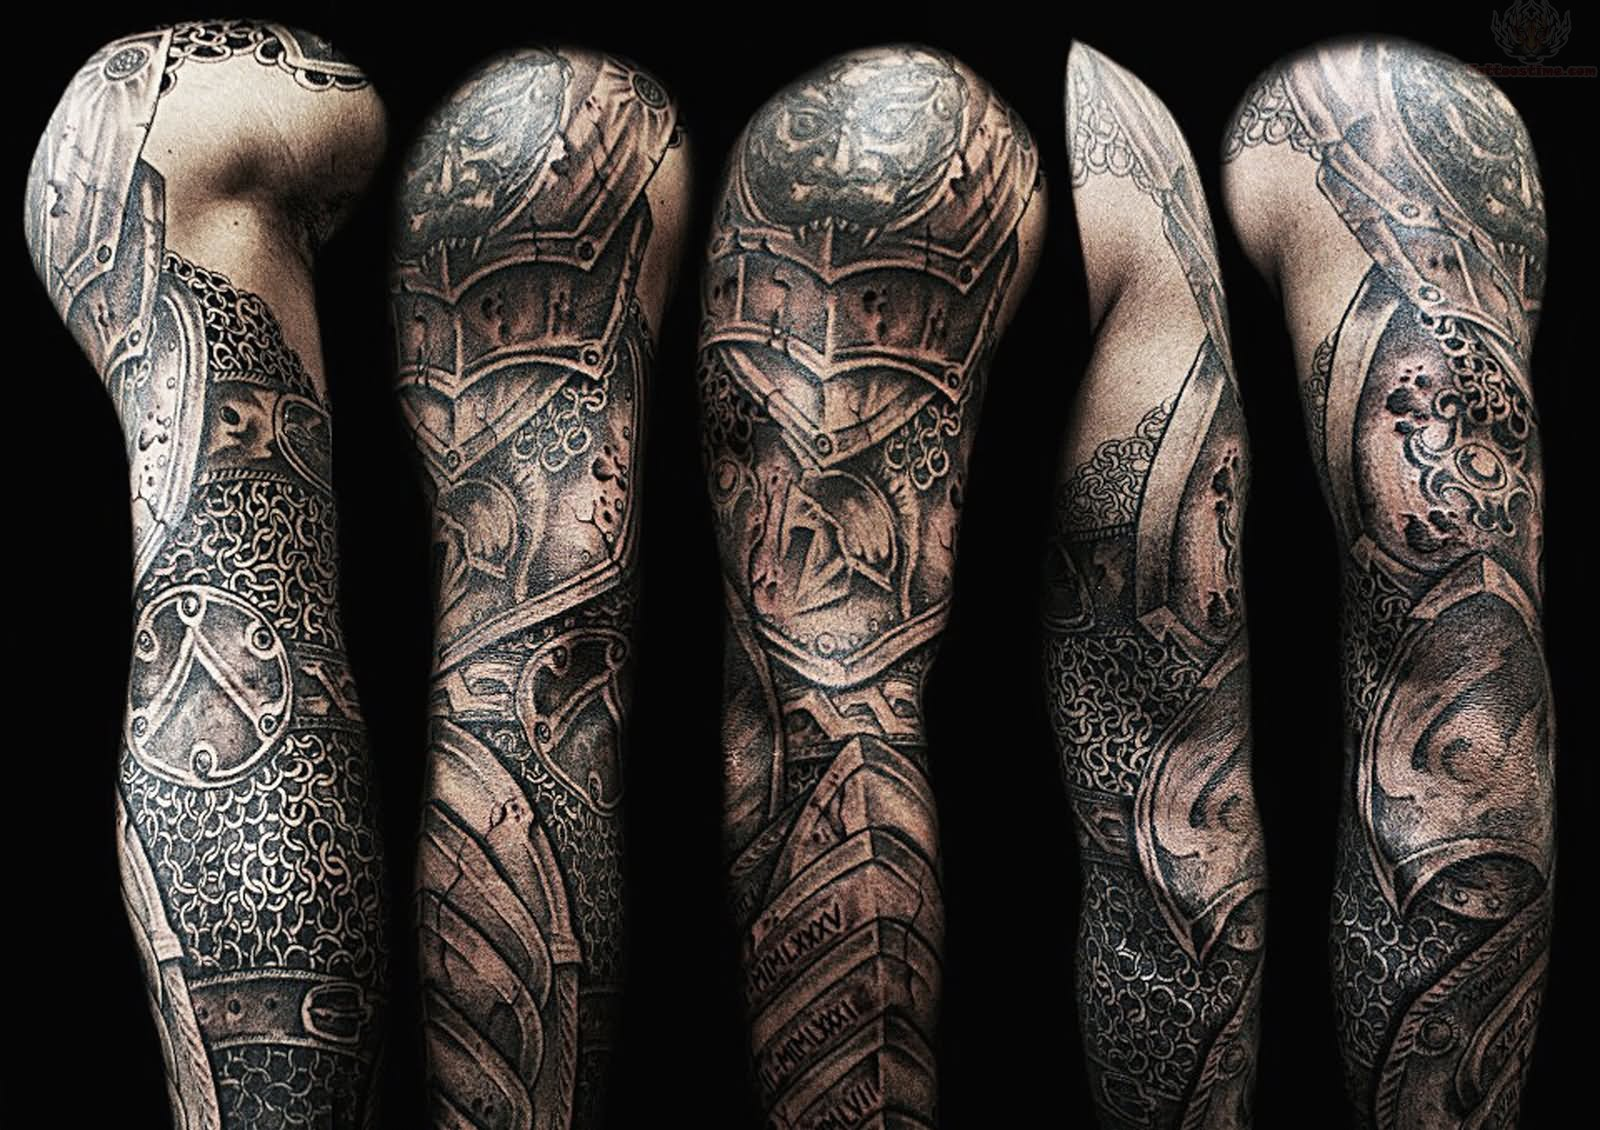 Scottish Tattoo Sleeve